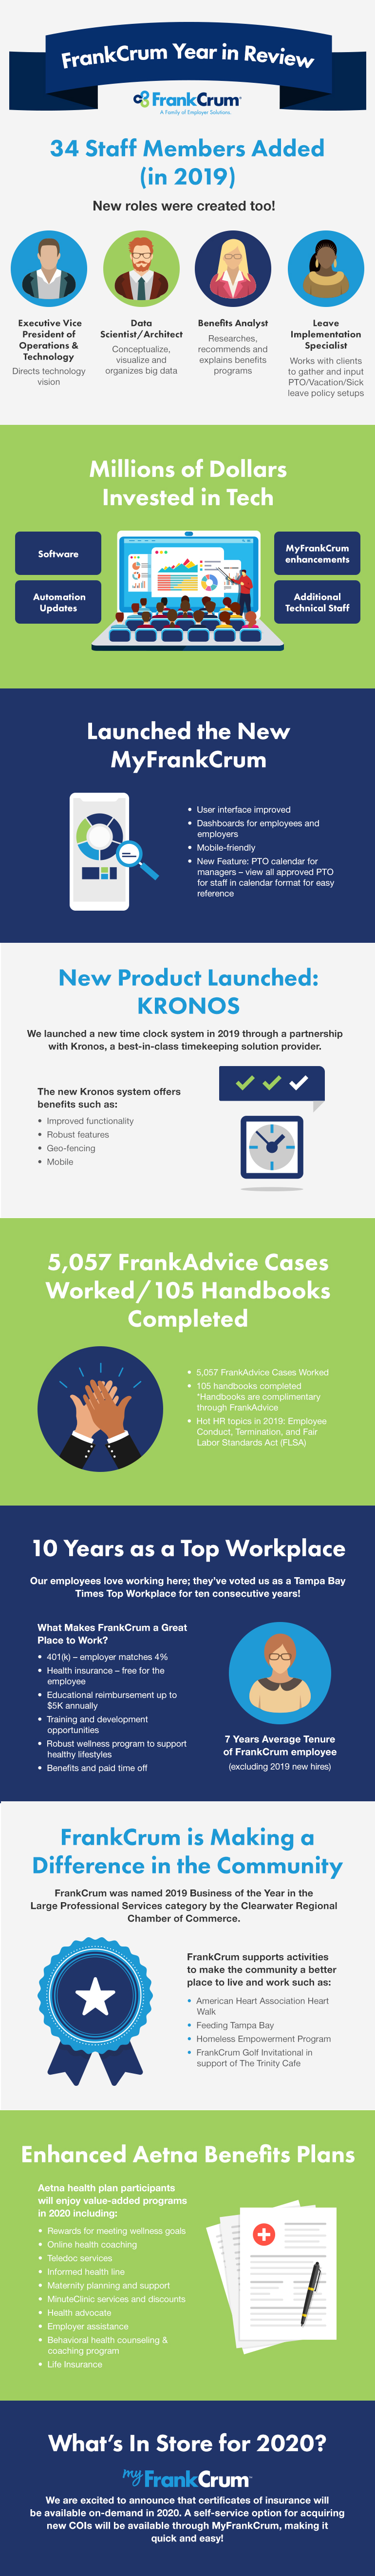 FrankCrum_infographic_yearinreview2020